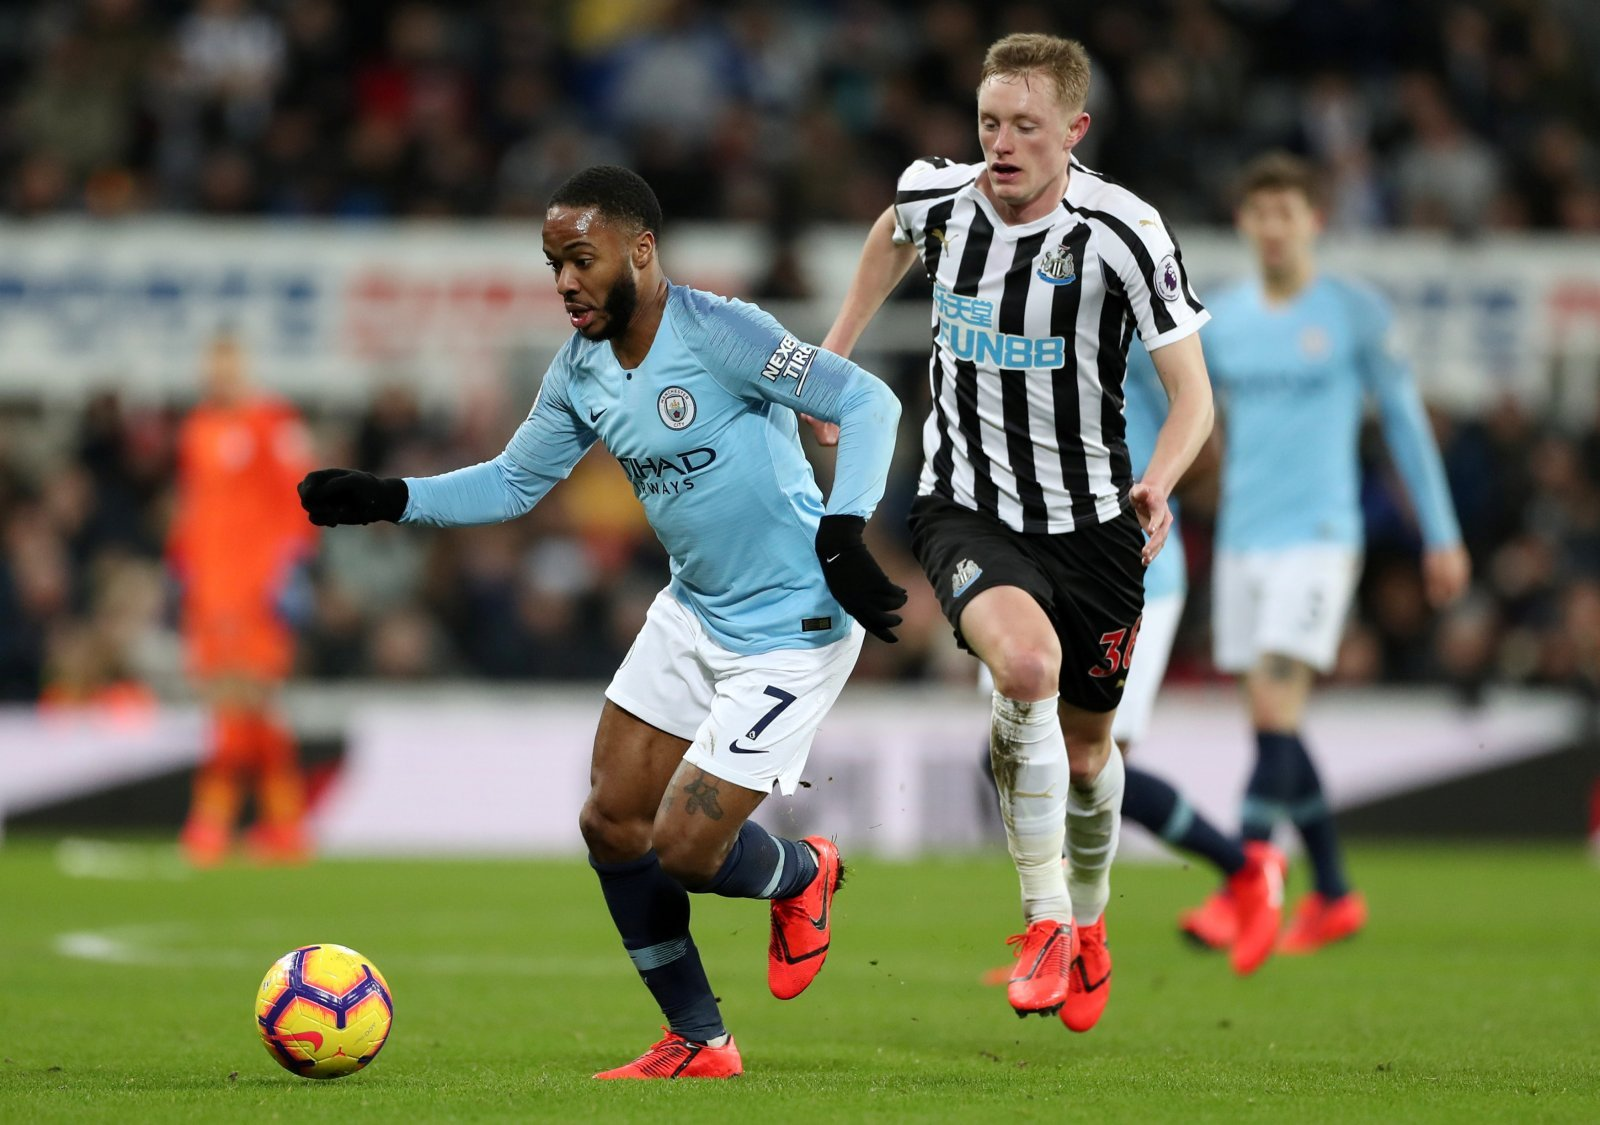 Newcastle fans take to Twitter distraught after Longstaff's setback